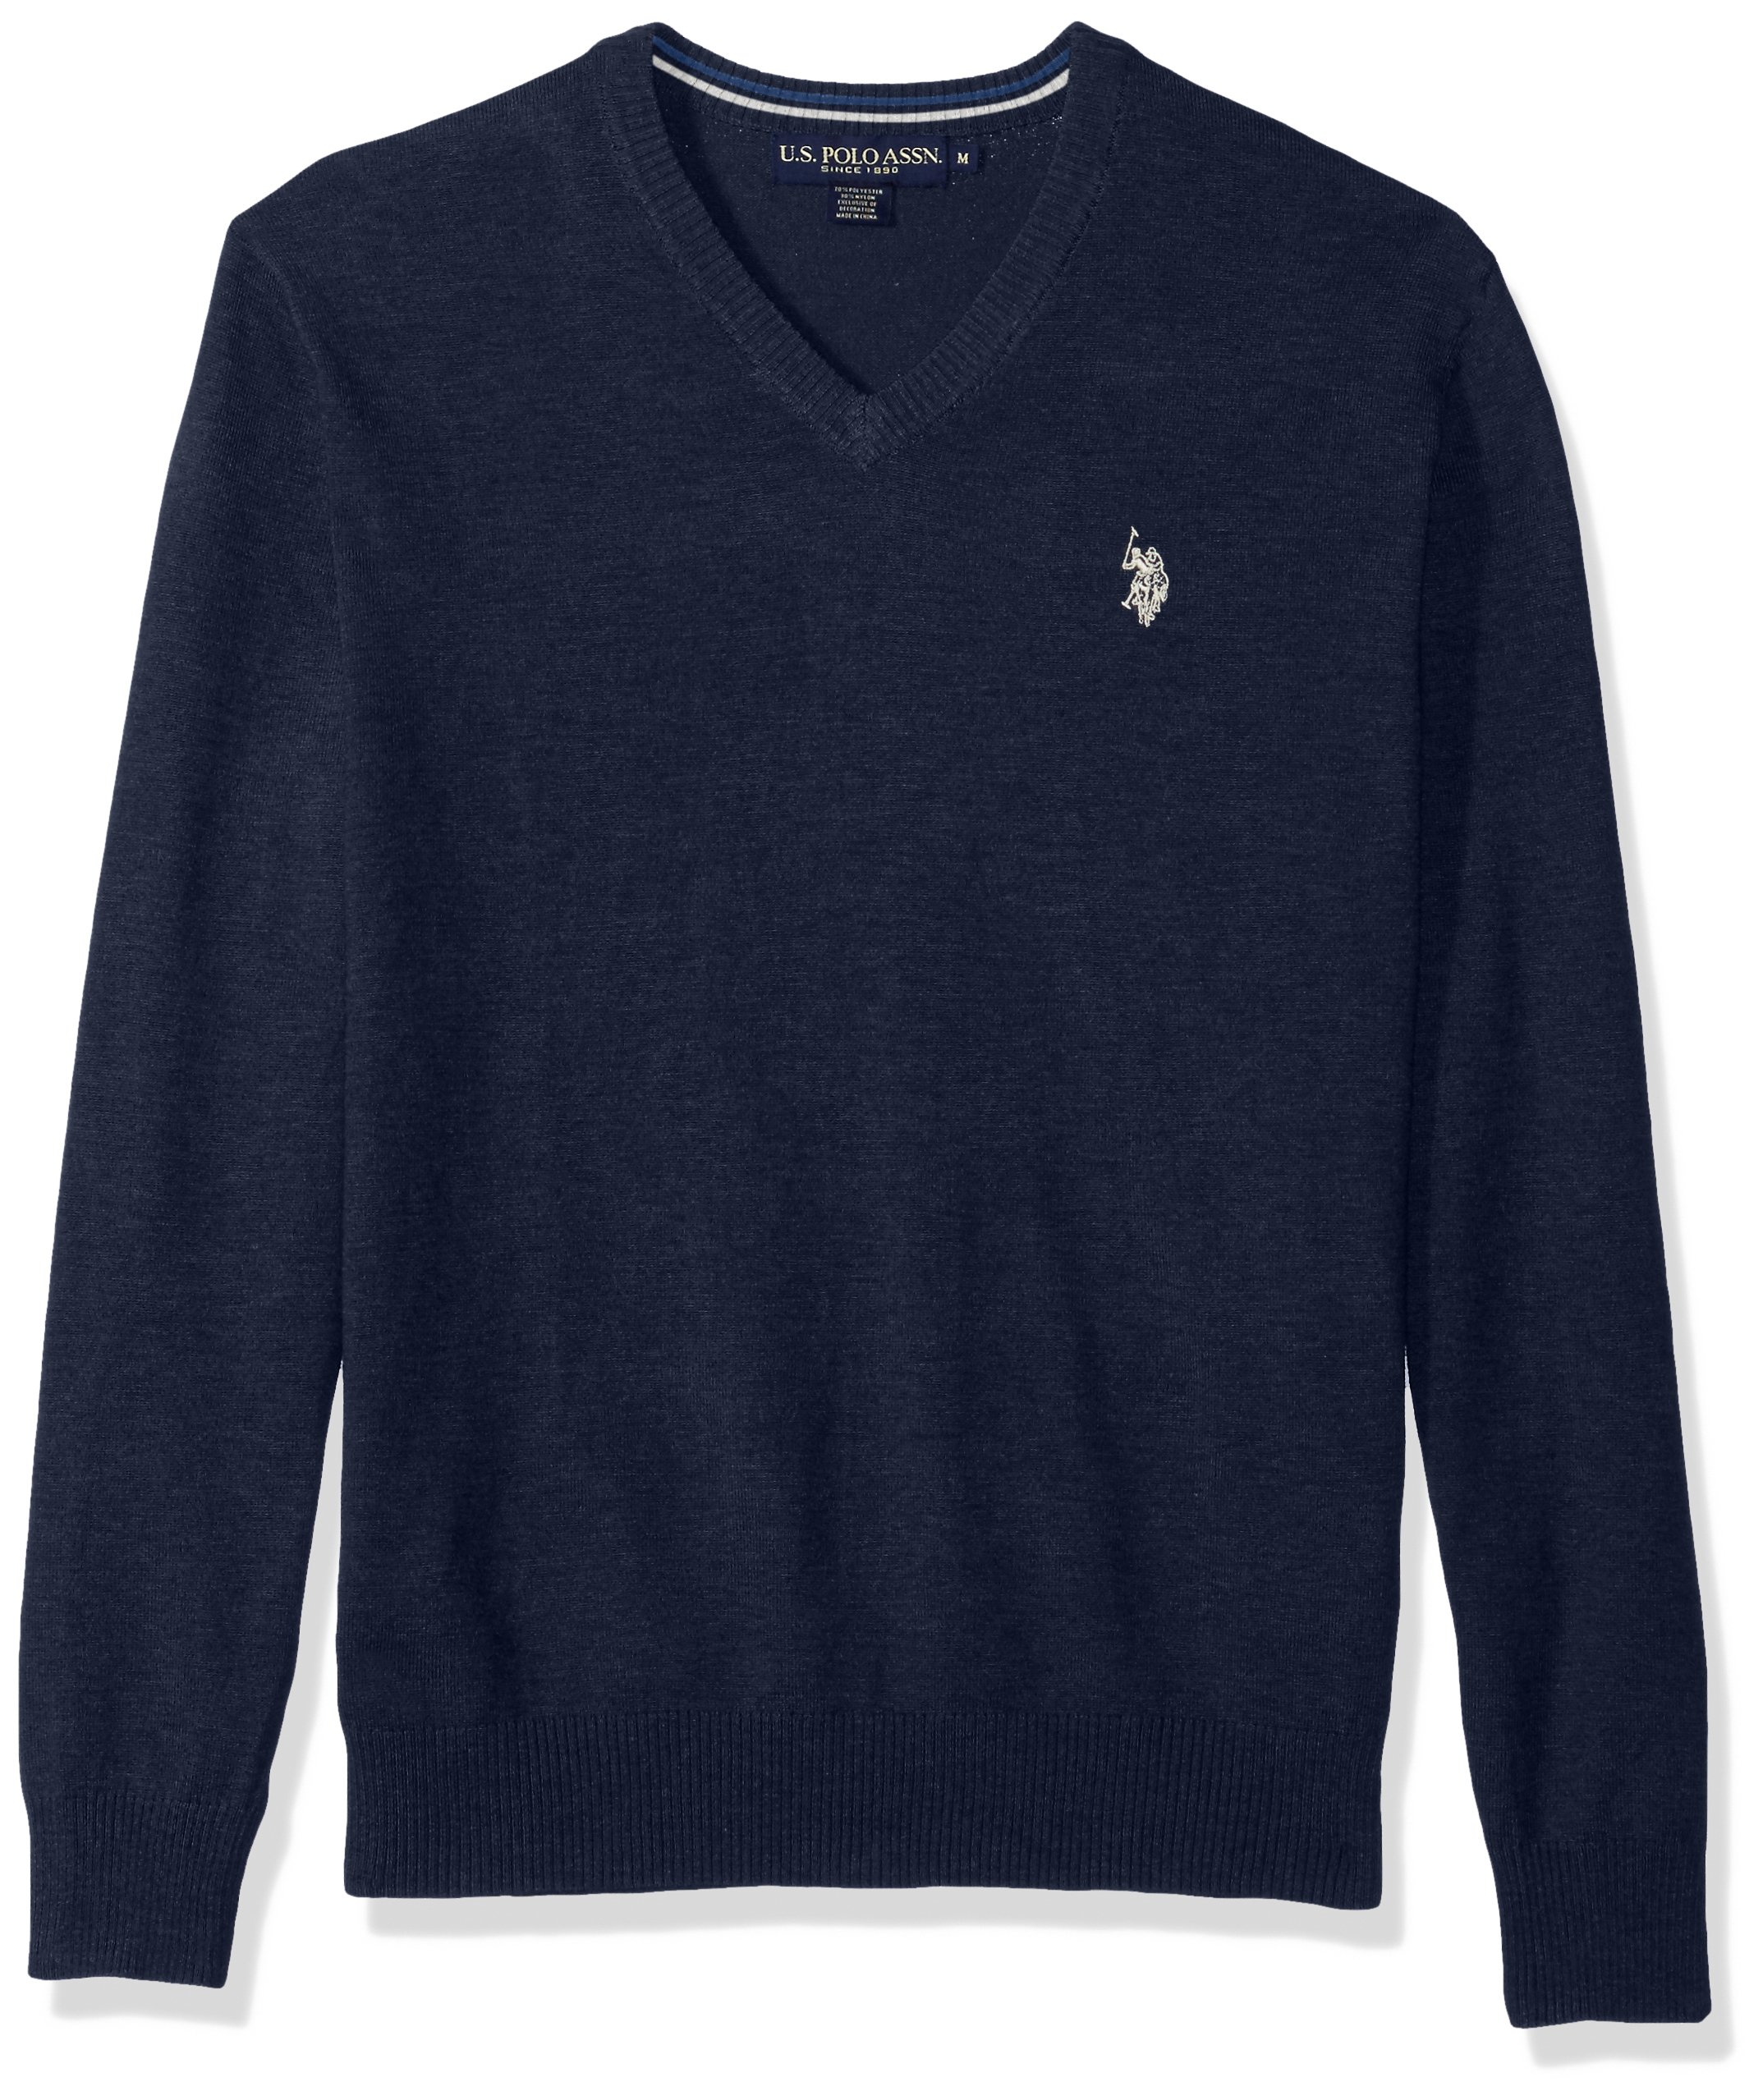 U.S. Polo Assn. Men's Stretch Fabric Solid V-Neck Sweater, Midnight Heather, Large